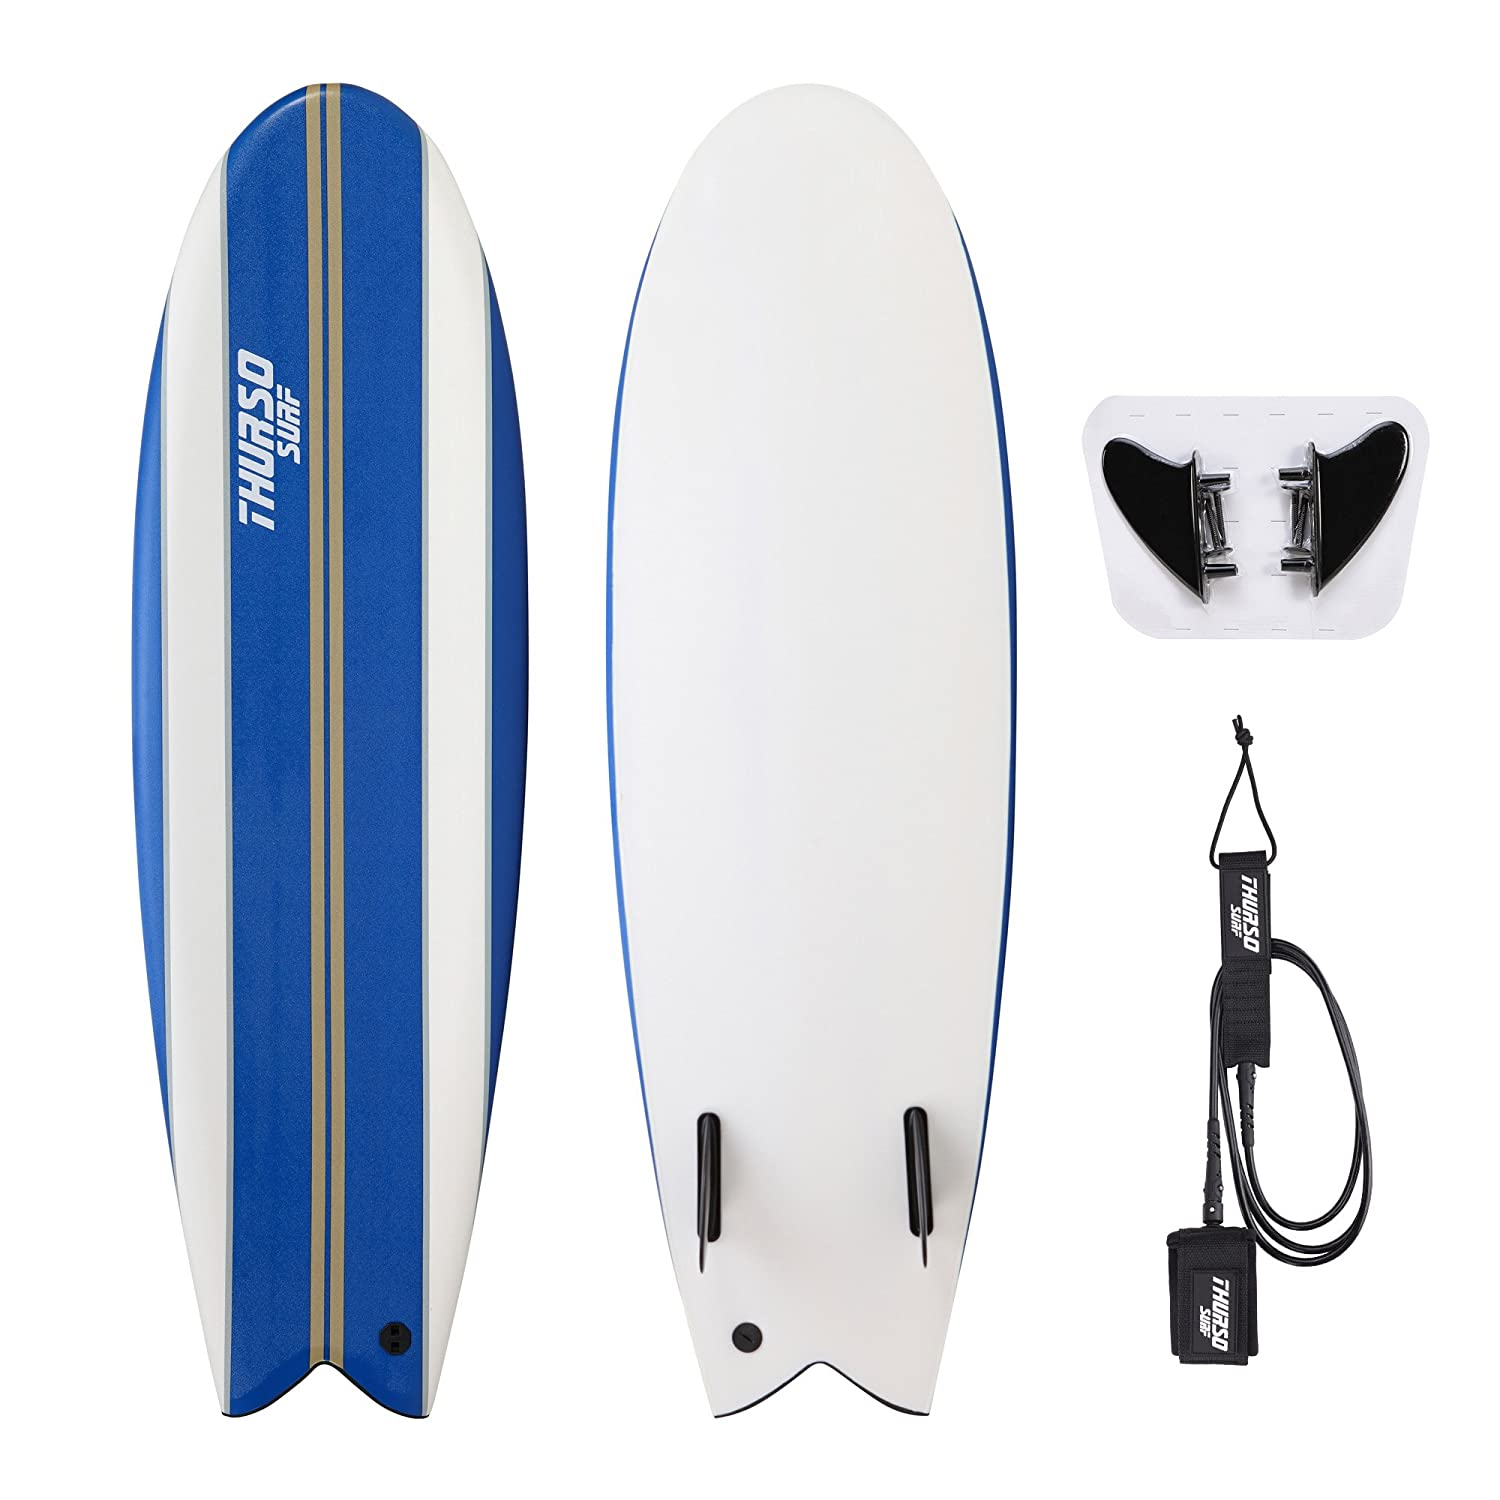 THURSO SURF Lancer 5 10 Fish Soft Top Surfboard Package Includes Twin Fins Double Stainless Steel Swivel Leash EPS Core IXPE Deck HDPE Slick Bottom Built in Non Slip Deck Grip